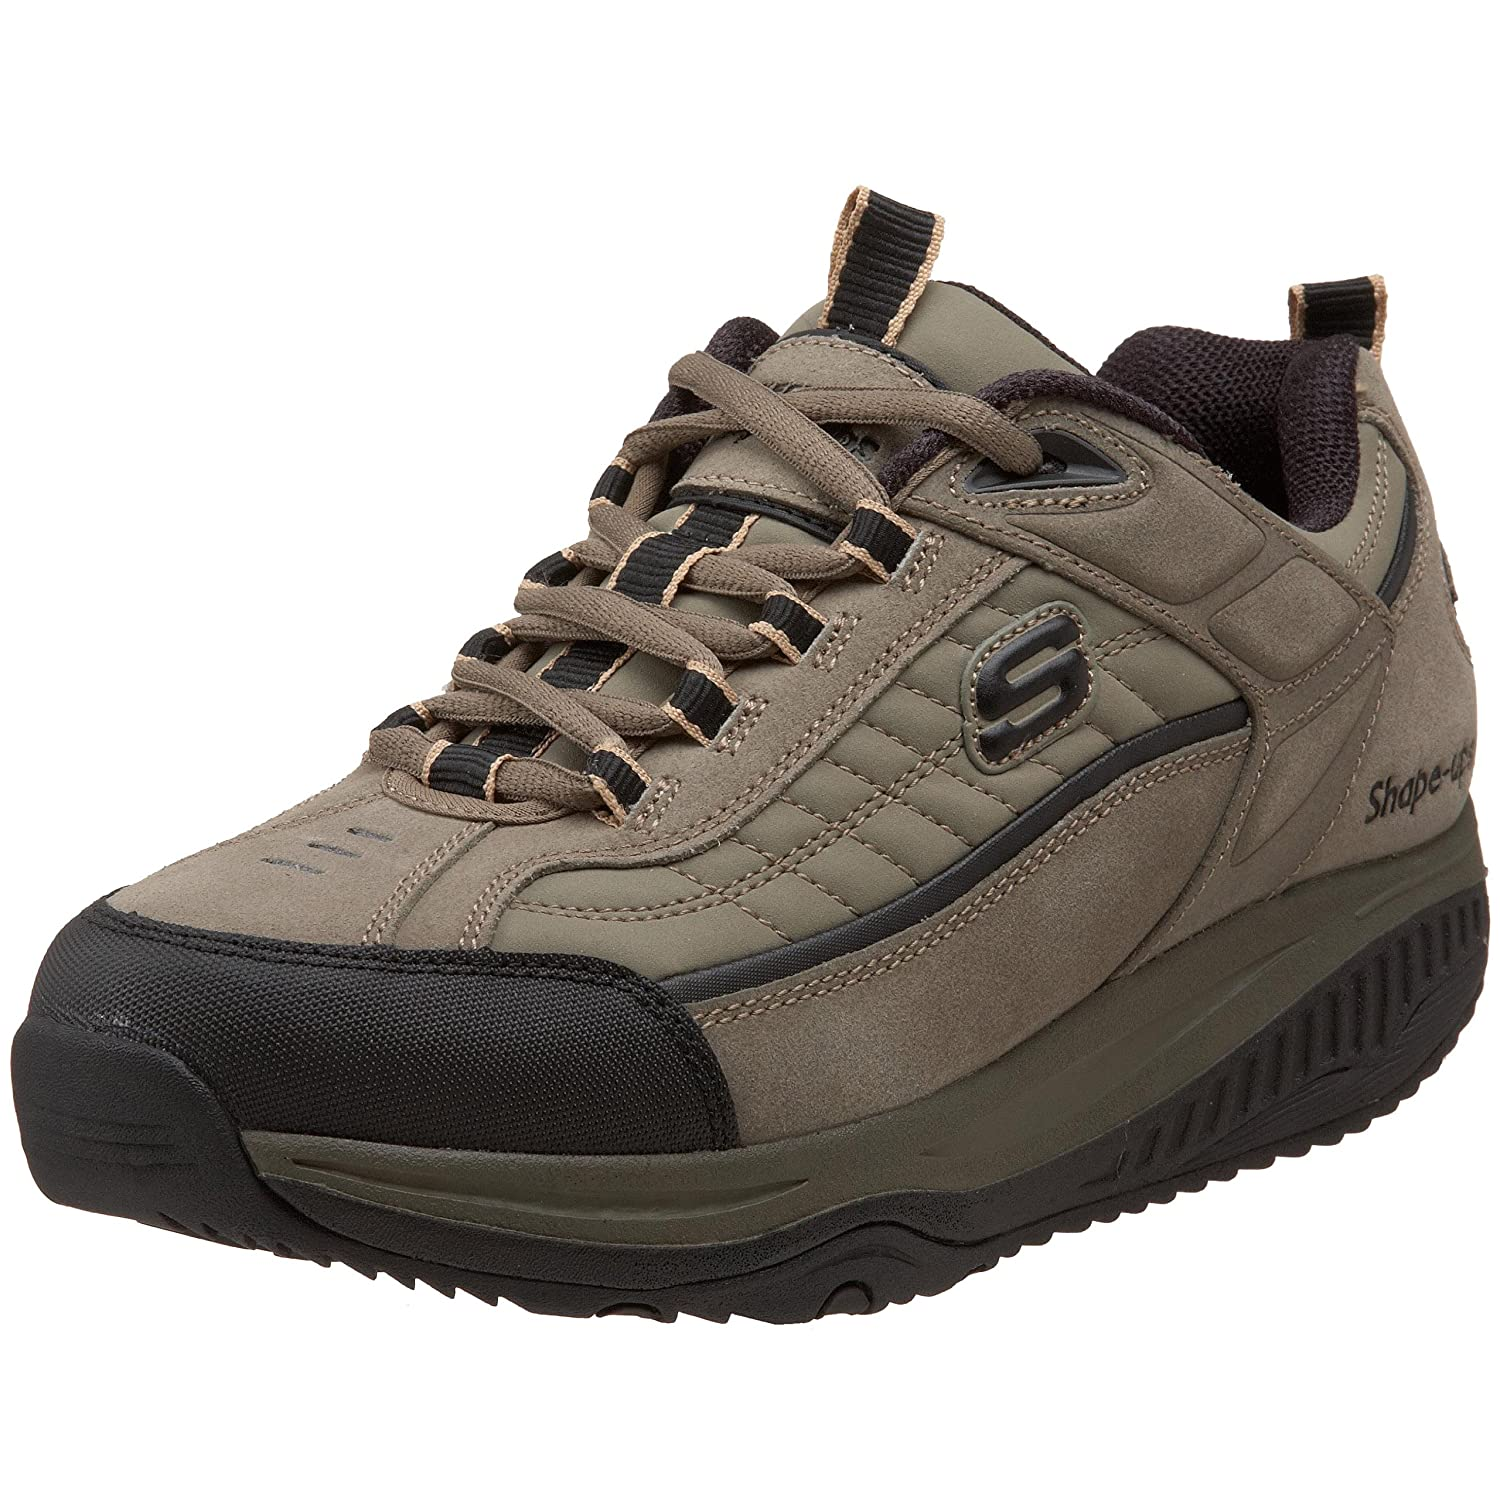 Skechers Sport Men's Shape Ups XT Fitness Shoe